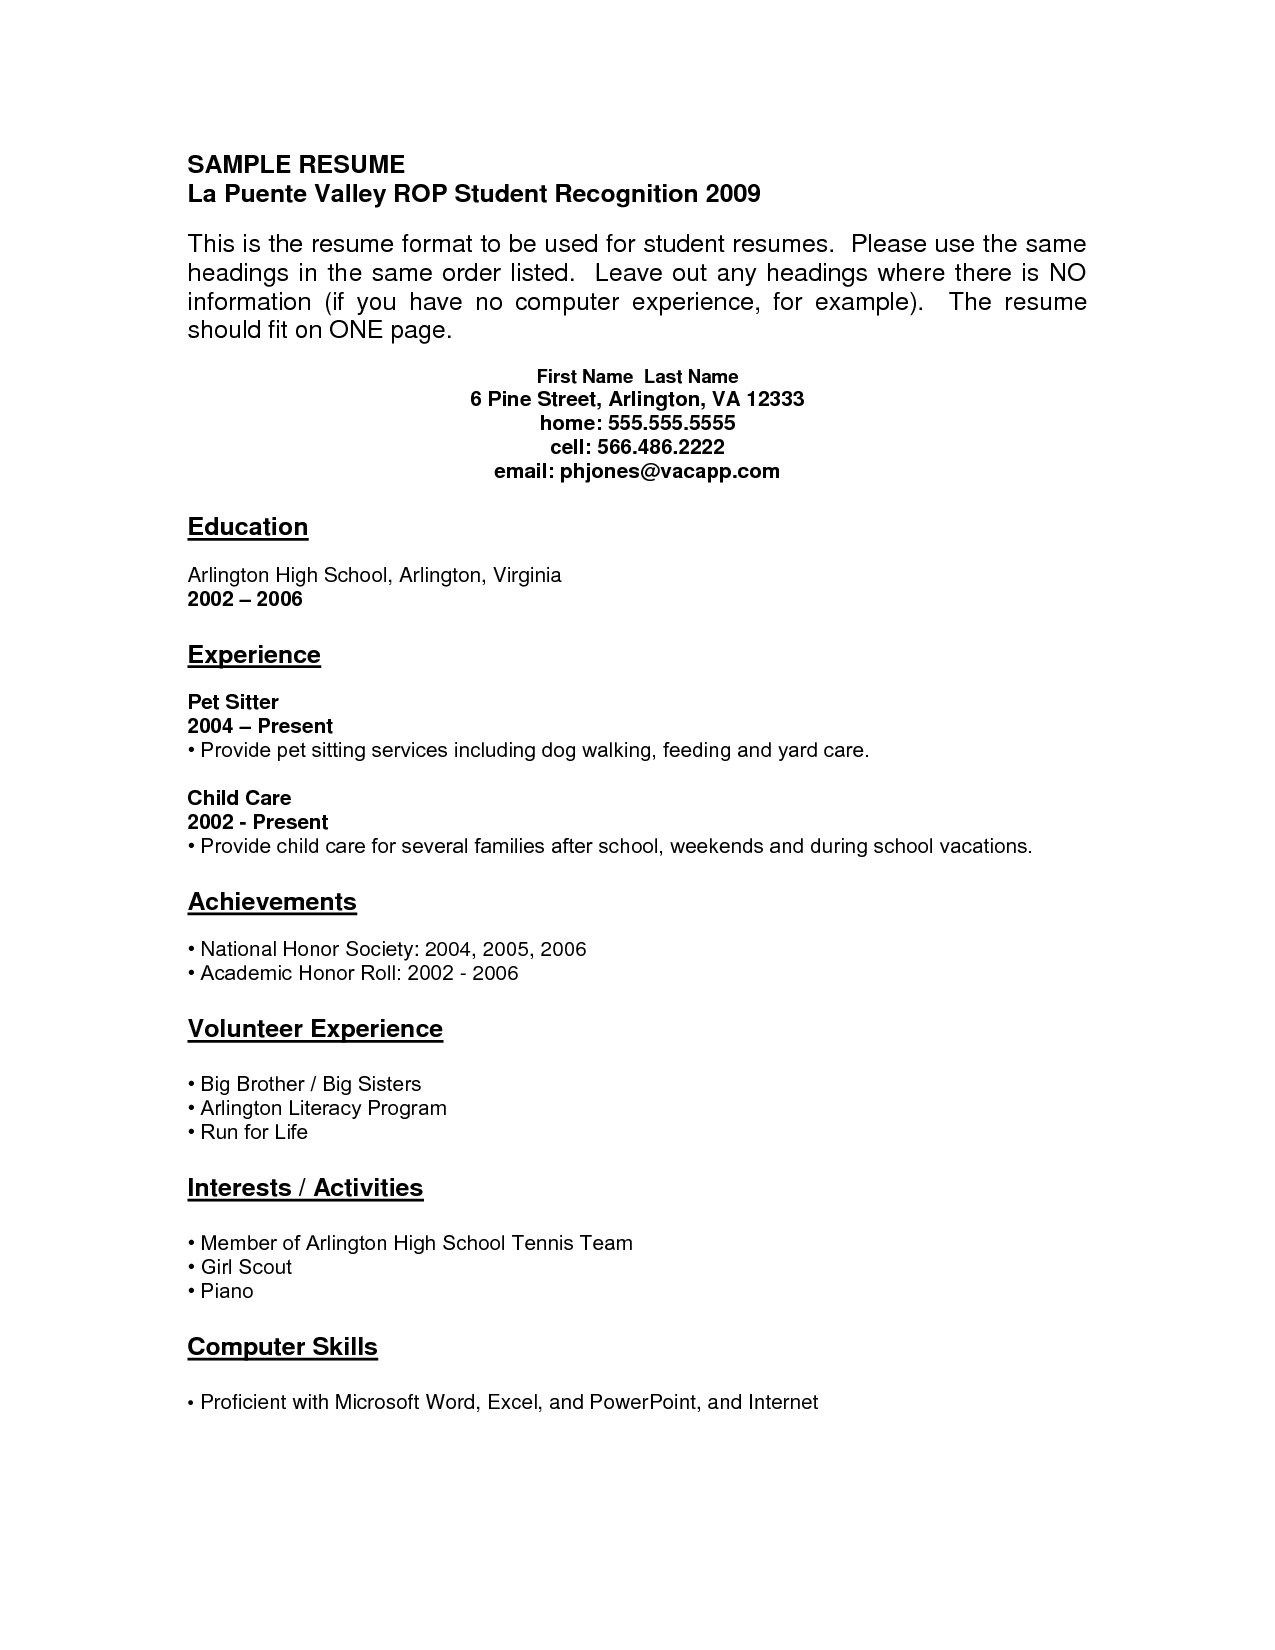 Sample Resume for Highschool Graduate with No Work Experience Resume Examples with No Job Experience - Resume Templates Job ...